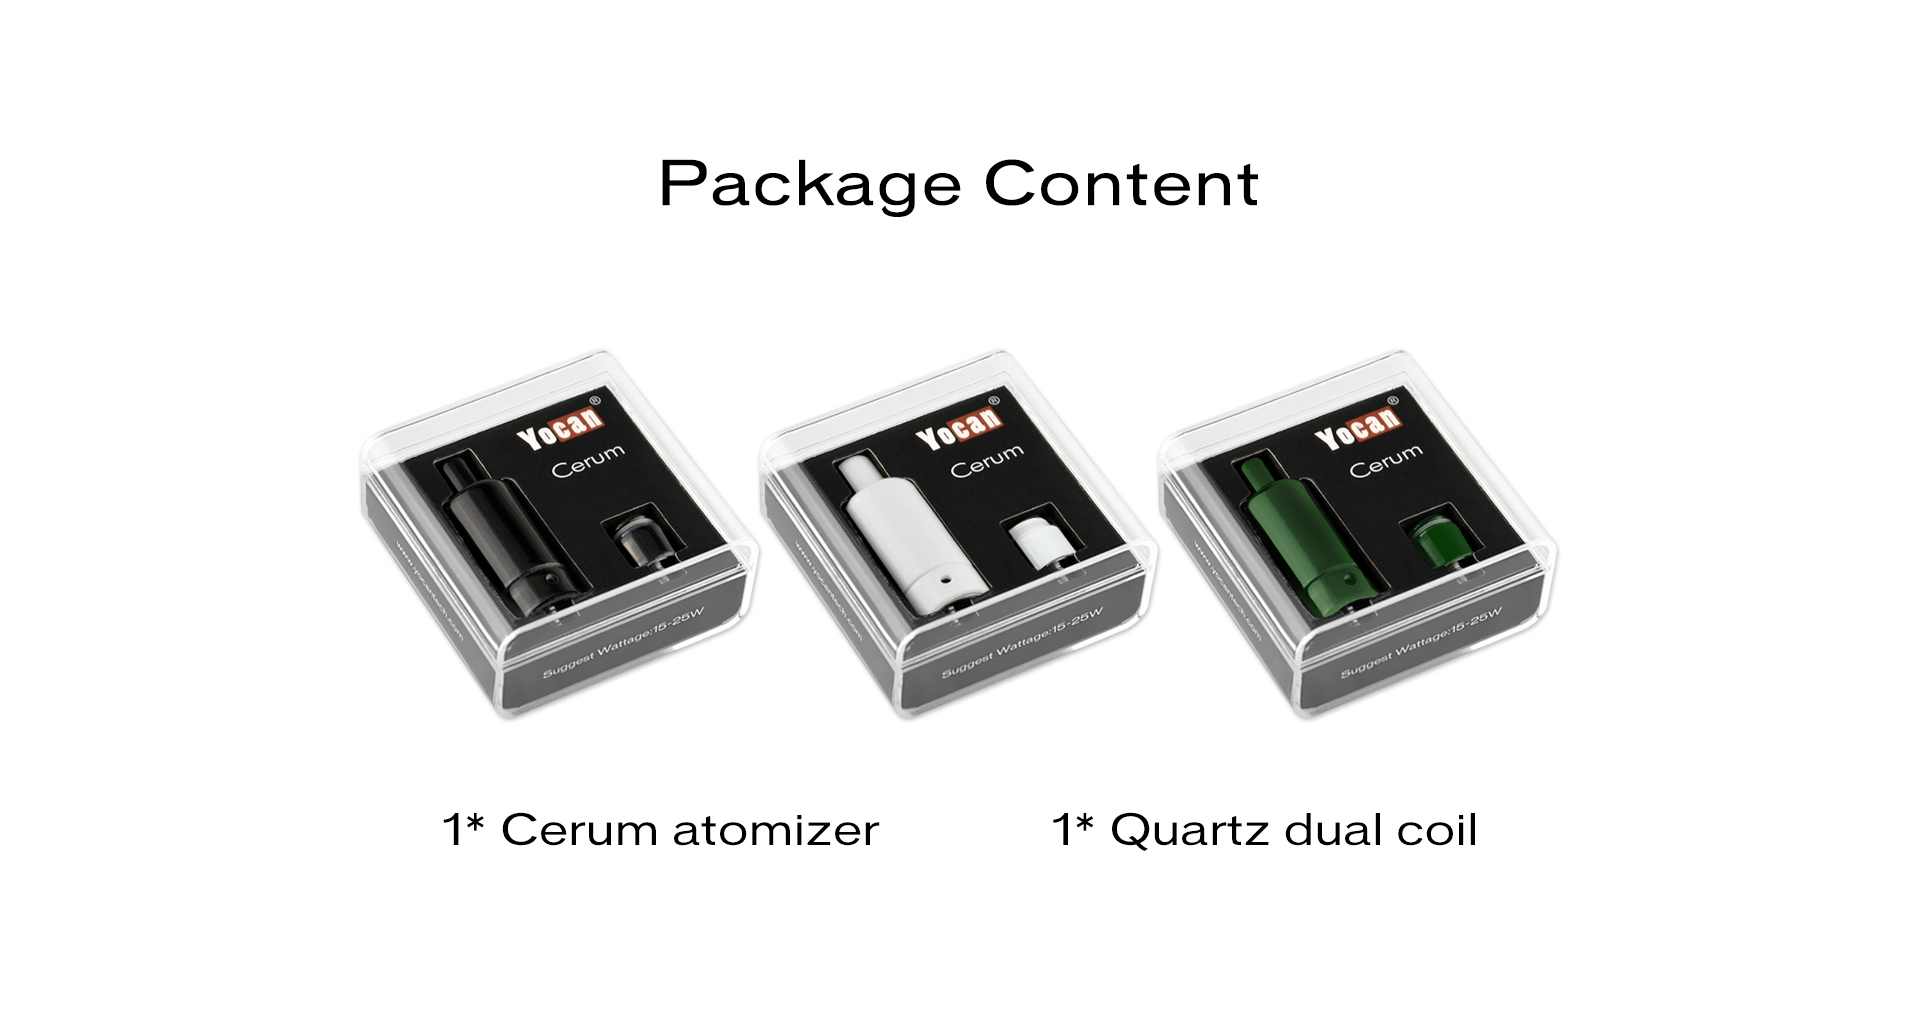 The Yocan Cerum Ceramic wax atomizer package content.